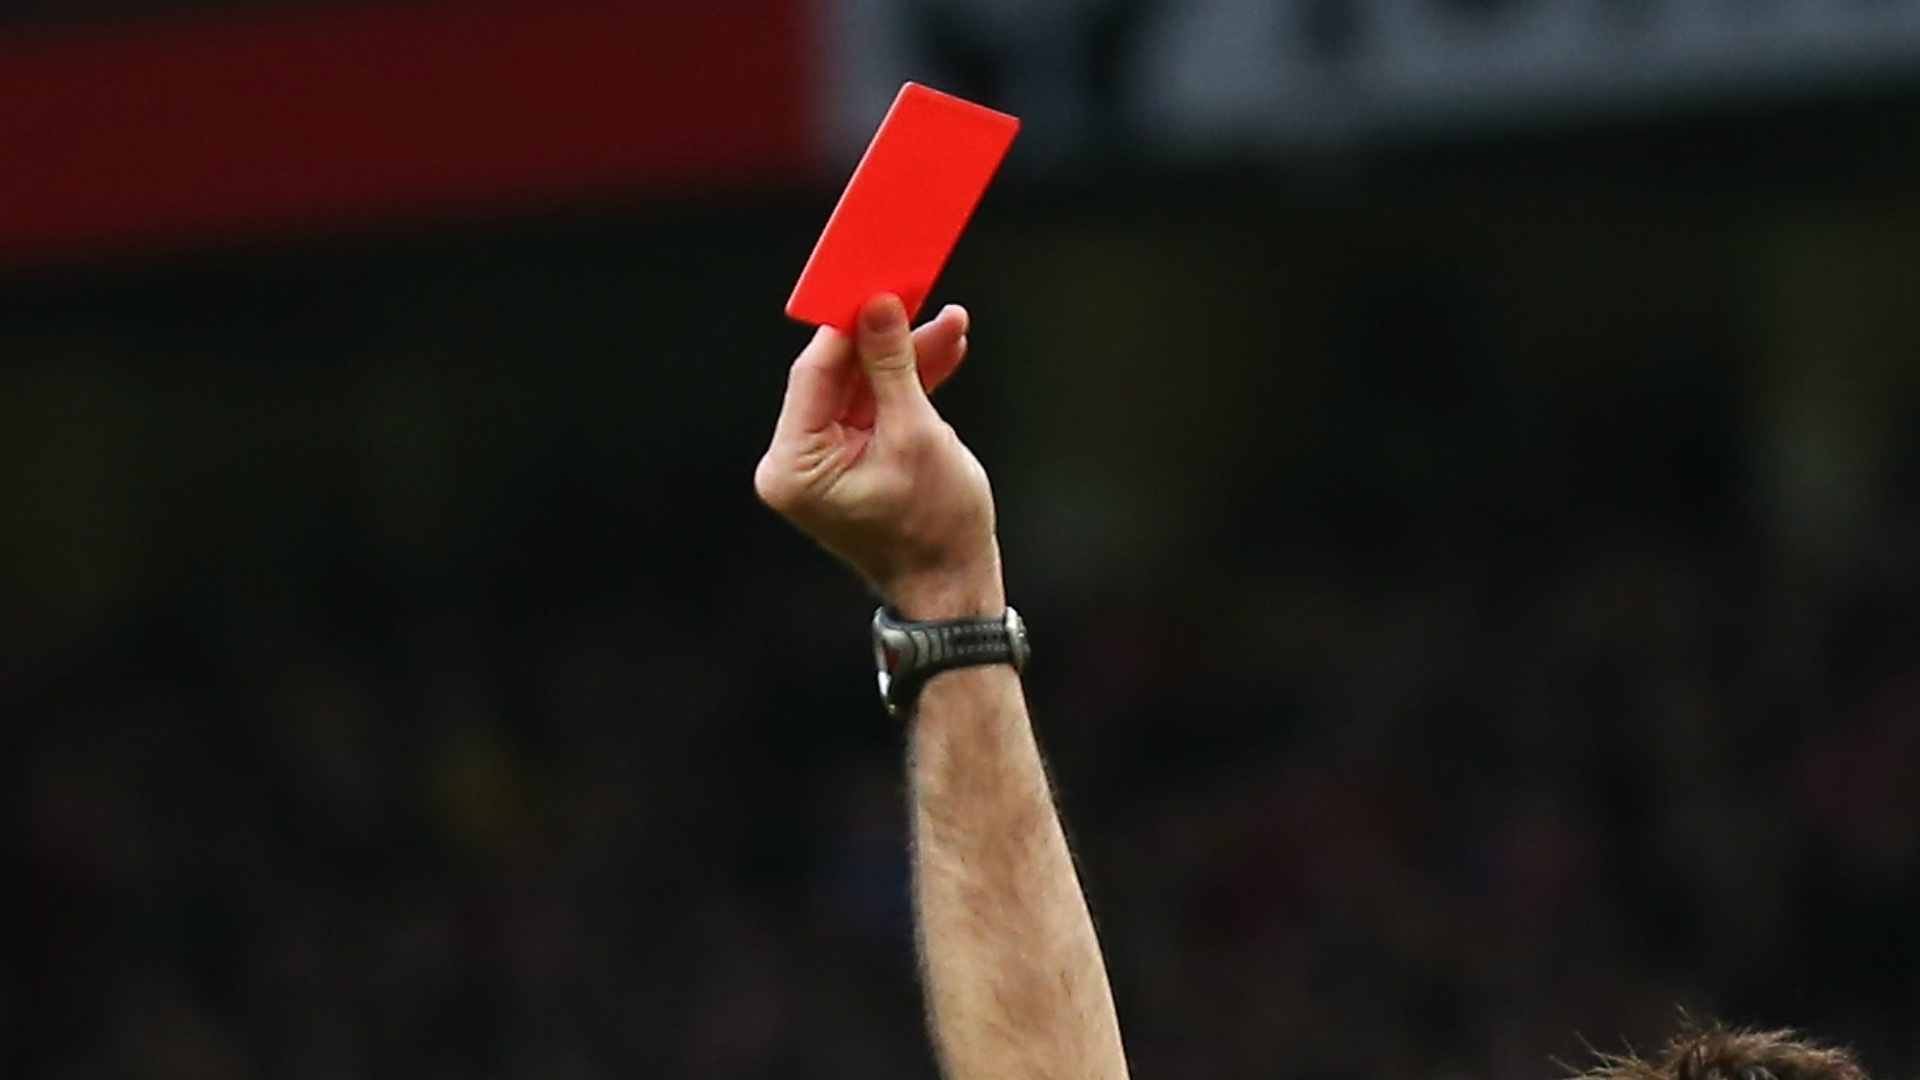 Football red card